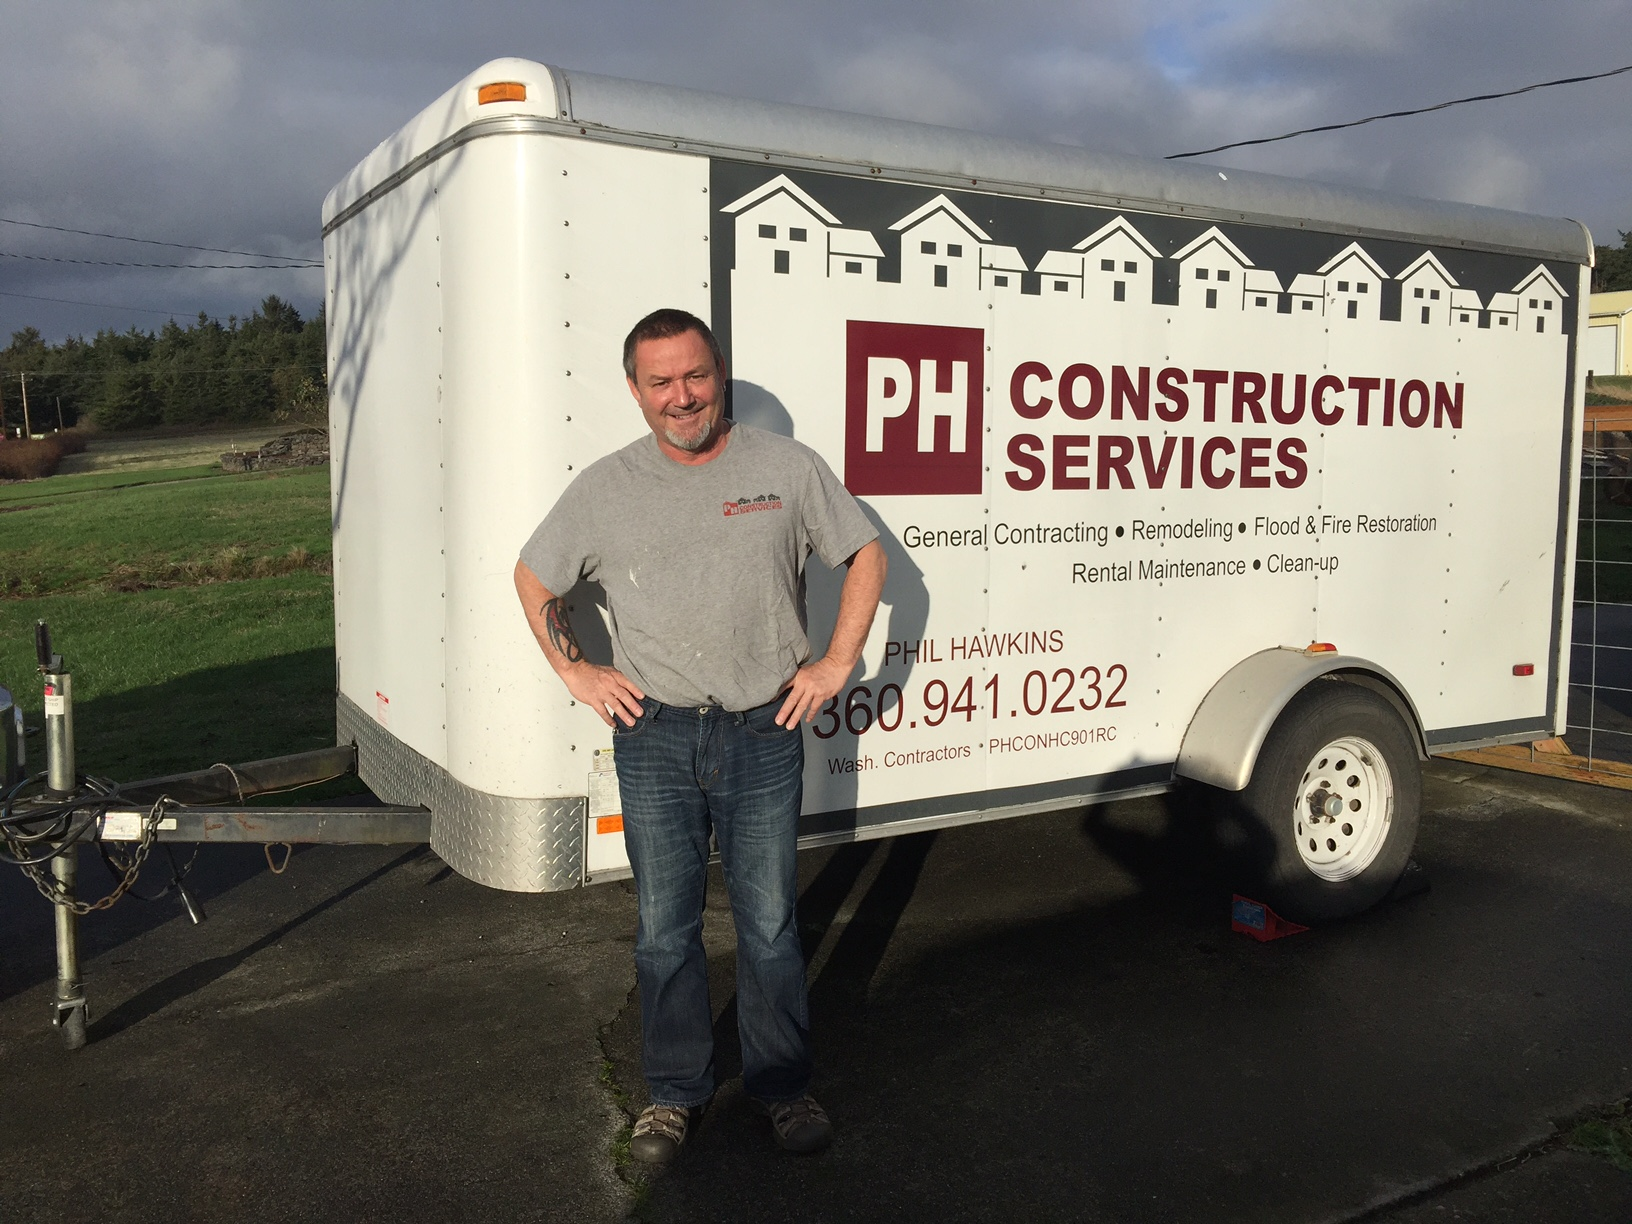 PH Construction Services